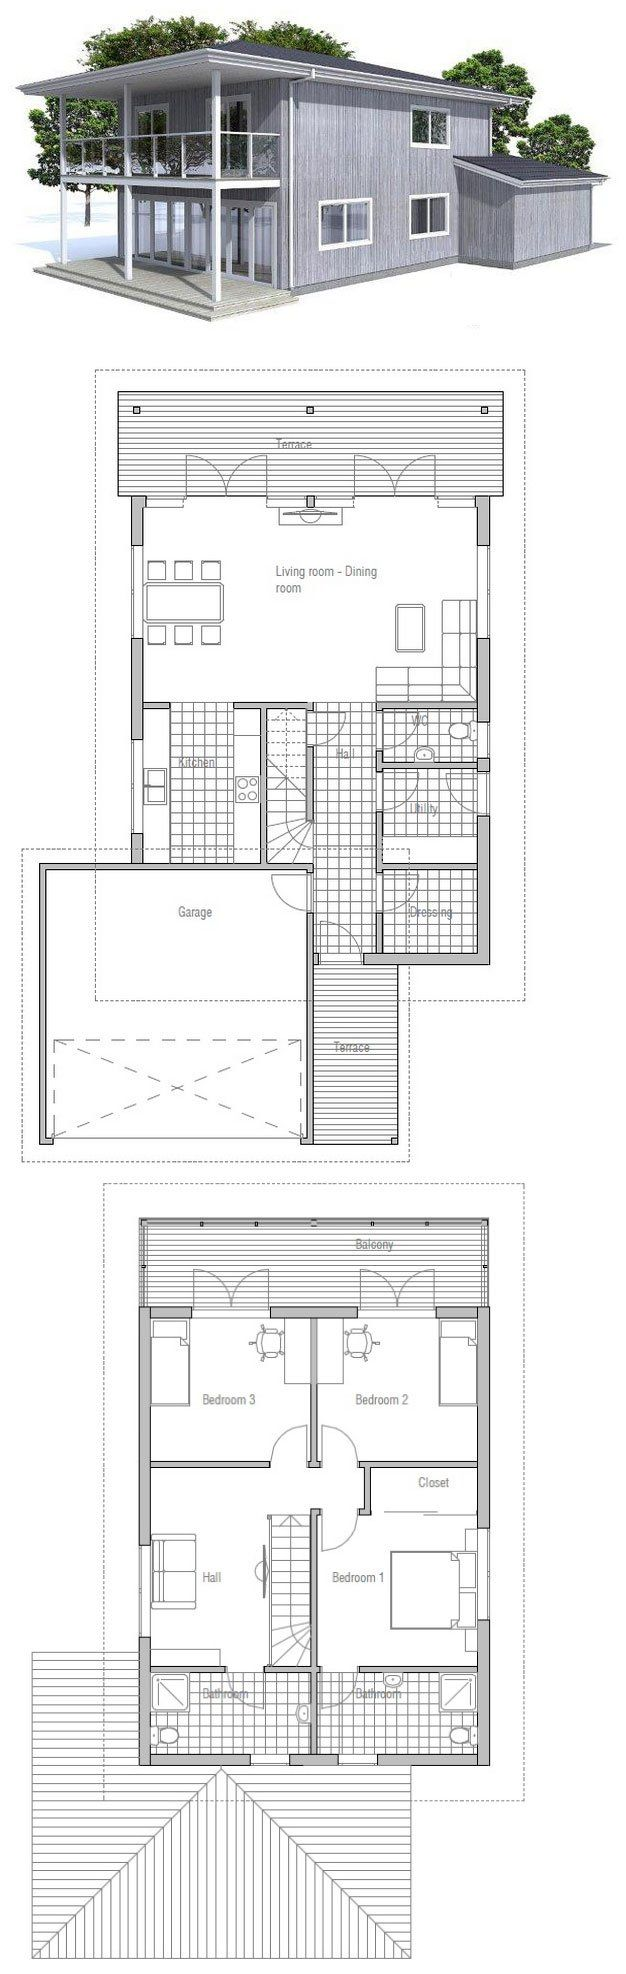 63 best images about modern house plans on pinterest